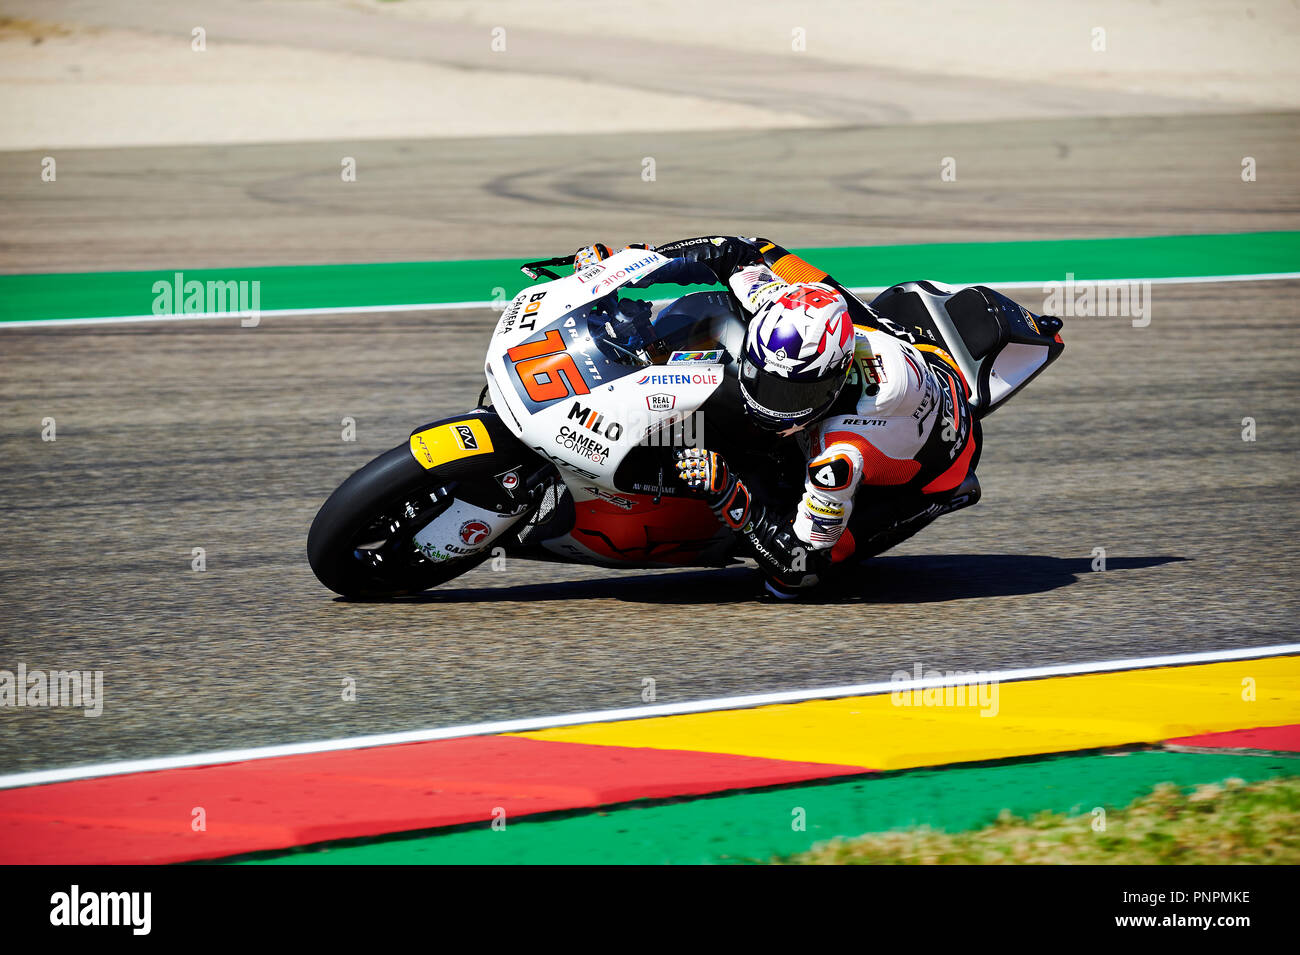 22nd September 2018, Ciudad del Motor de Aragon, Alcaniz, Spain; Motorcycling MotoGP of Aragon, Qualification; Joe Roberts of the NTS RW Moto2 Team rounds the bend during the qualifying - Stock Image